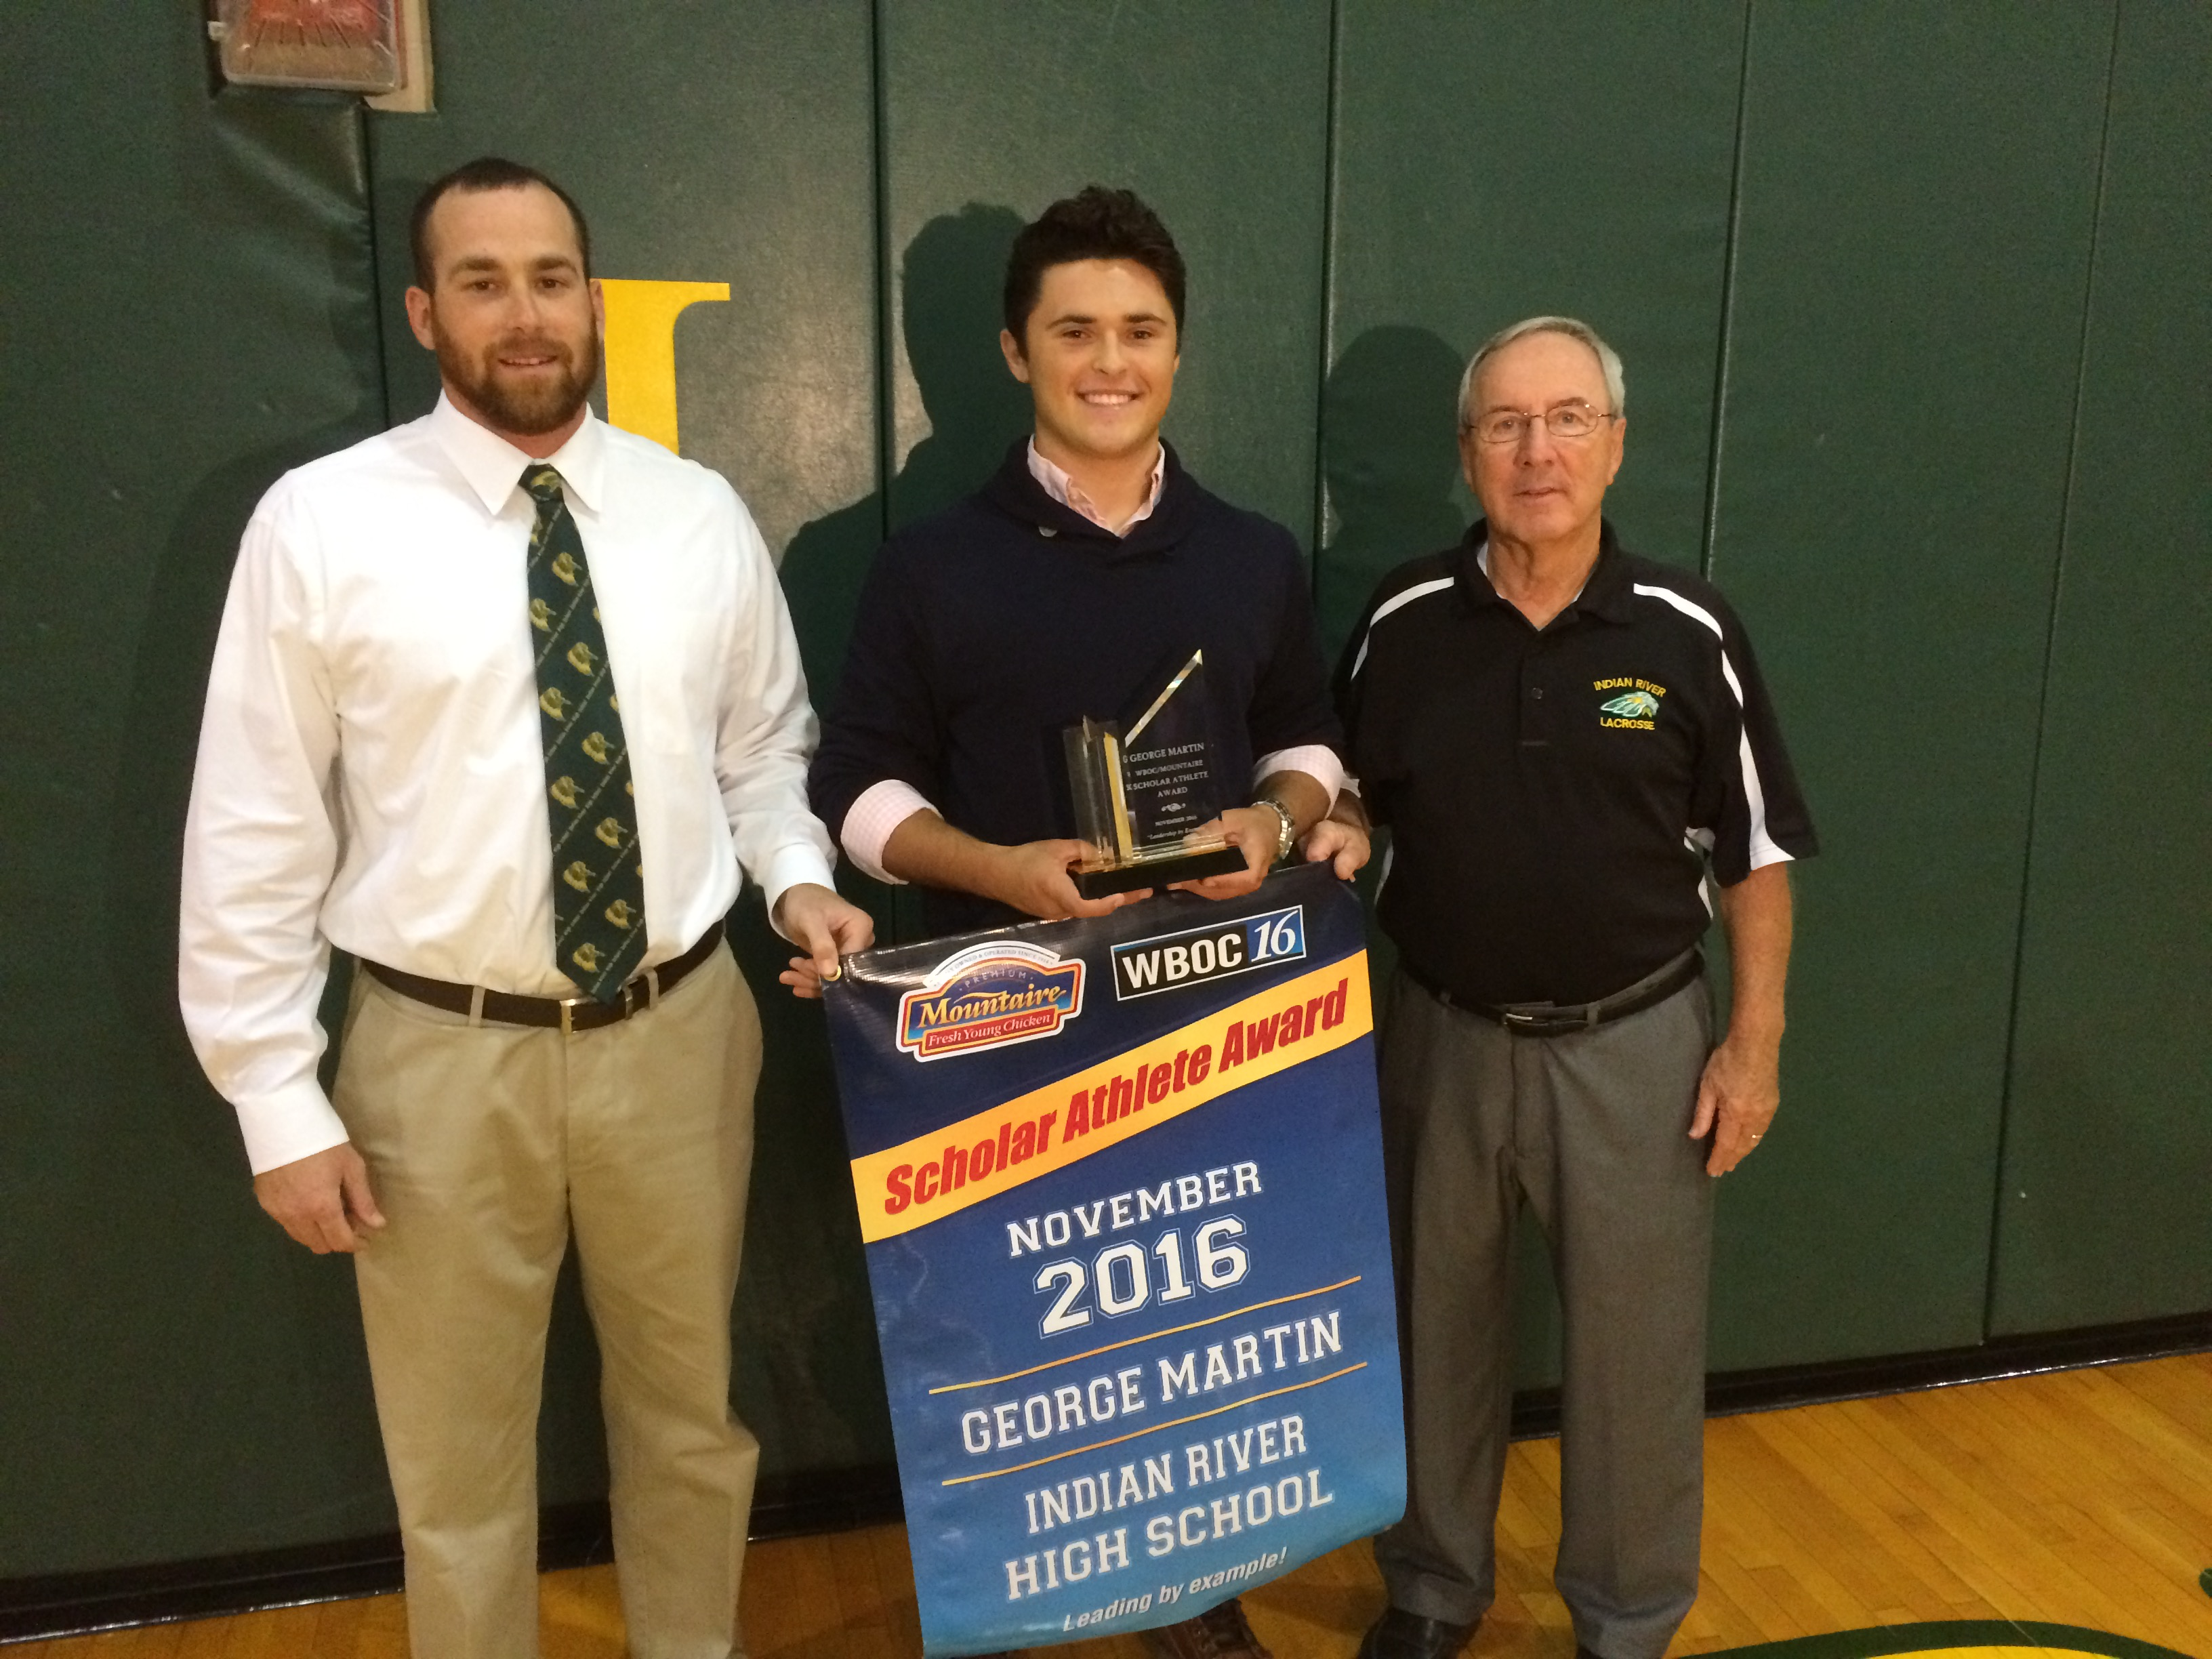 WBOC/Mountaire Farms November Scholar Athlete of the Month – George Martin, Indian River